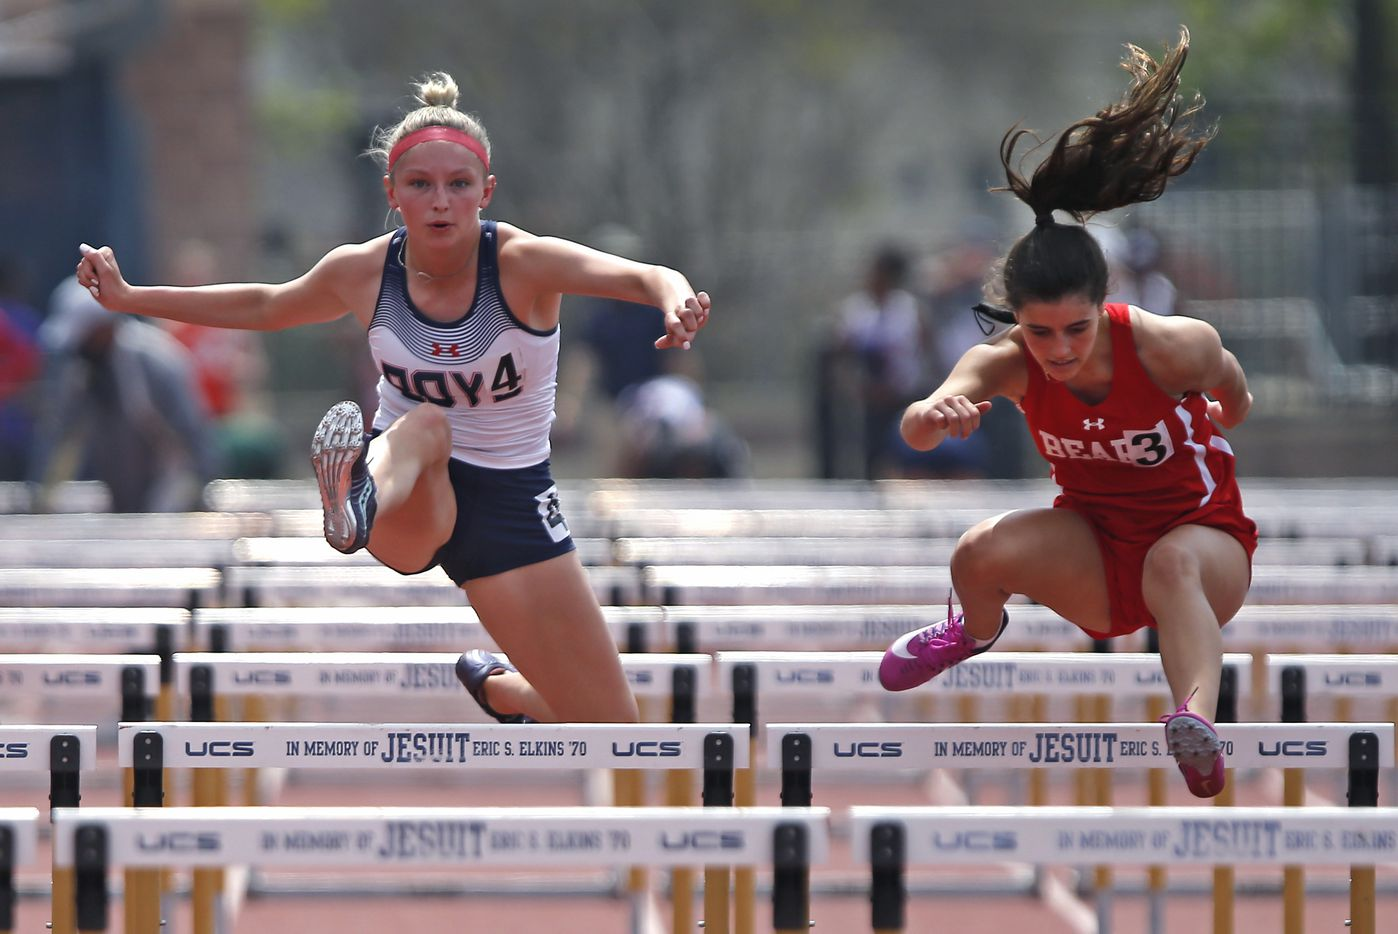 McKinney Boyd High School's Delaney Goheen (left), 17, competes with Emi Diaz, 14, of Ursuline Academy in the 100 hurdels during the Jesuit-Sheaner Relays held at Jesuit College Preparatory School in Dallas on Saturday, March 27, 2021.  (Stewart F. House/Special Contributor)